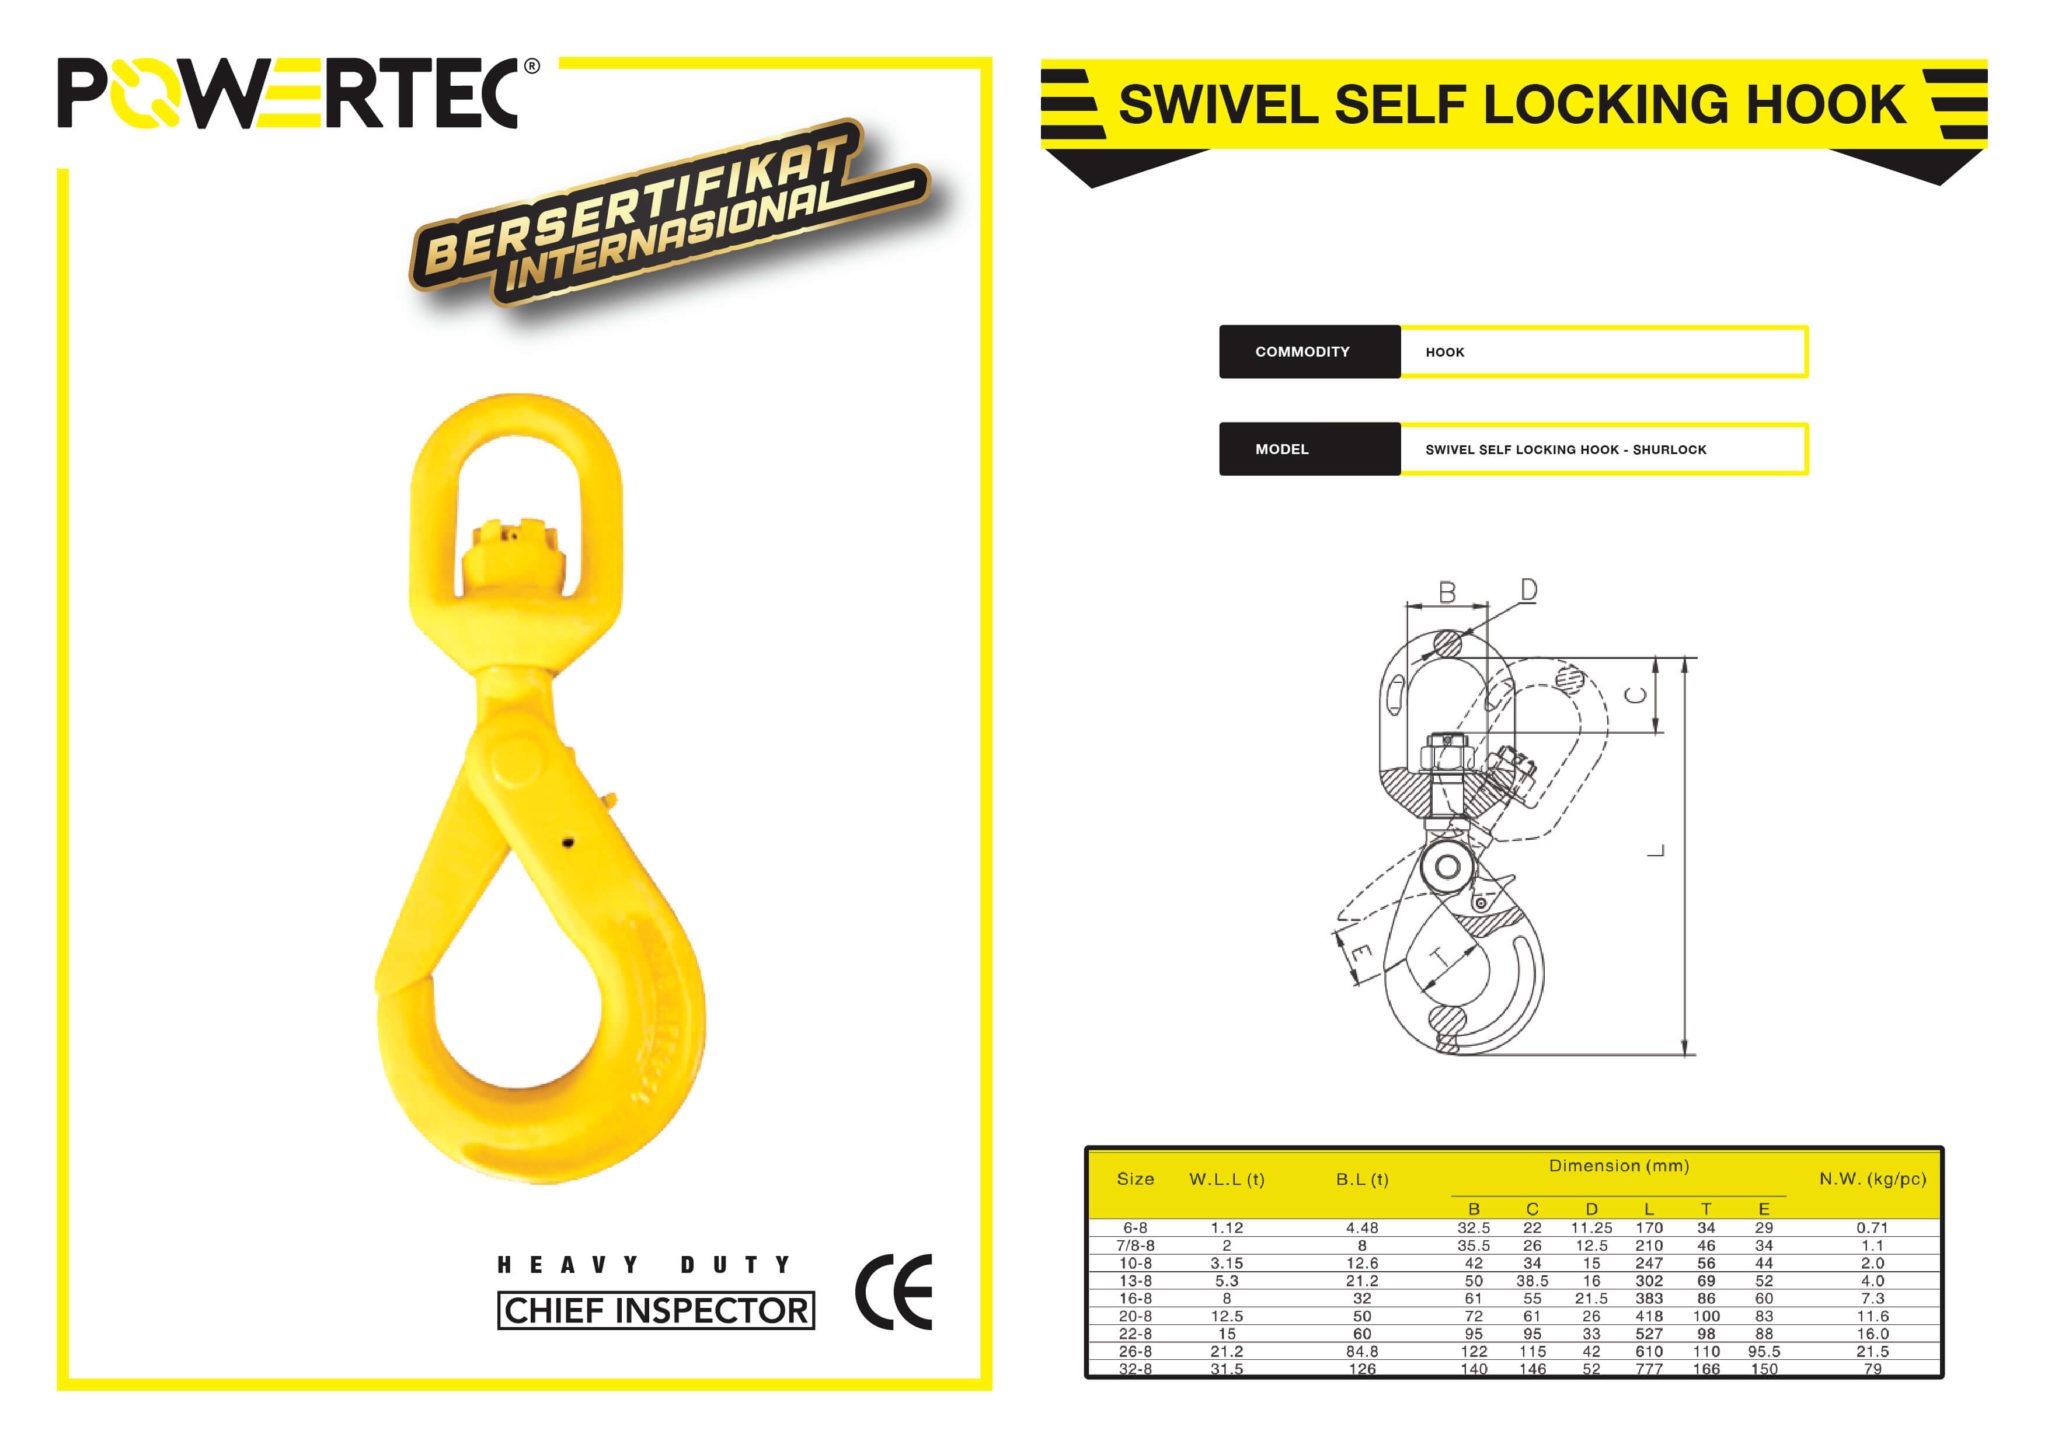 POWERTEC SWIVEL SELF LOCKING HOOK BROCHURE